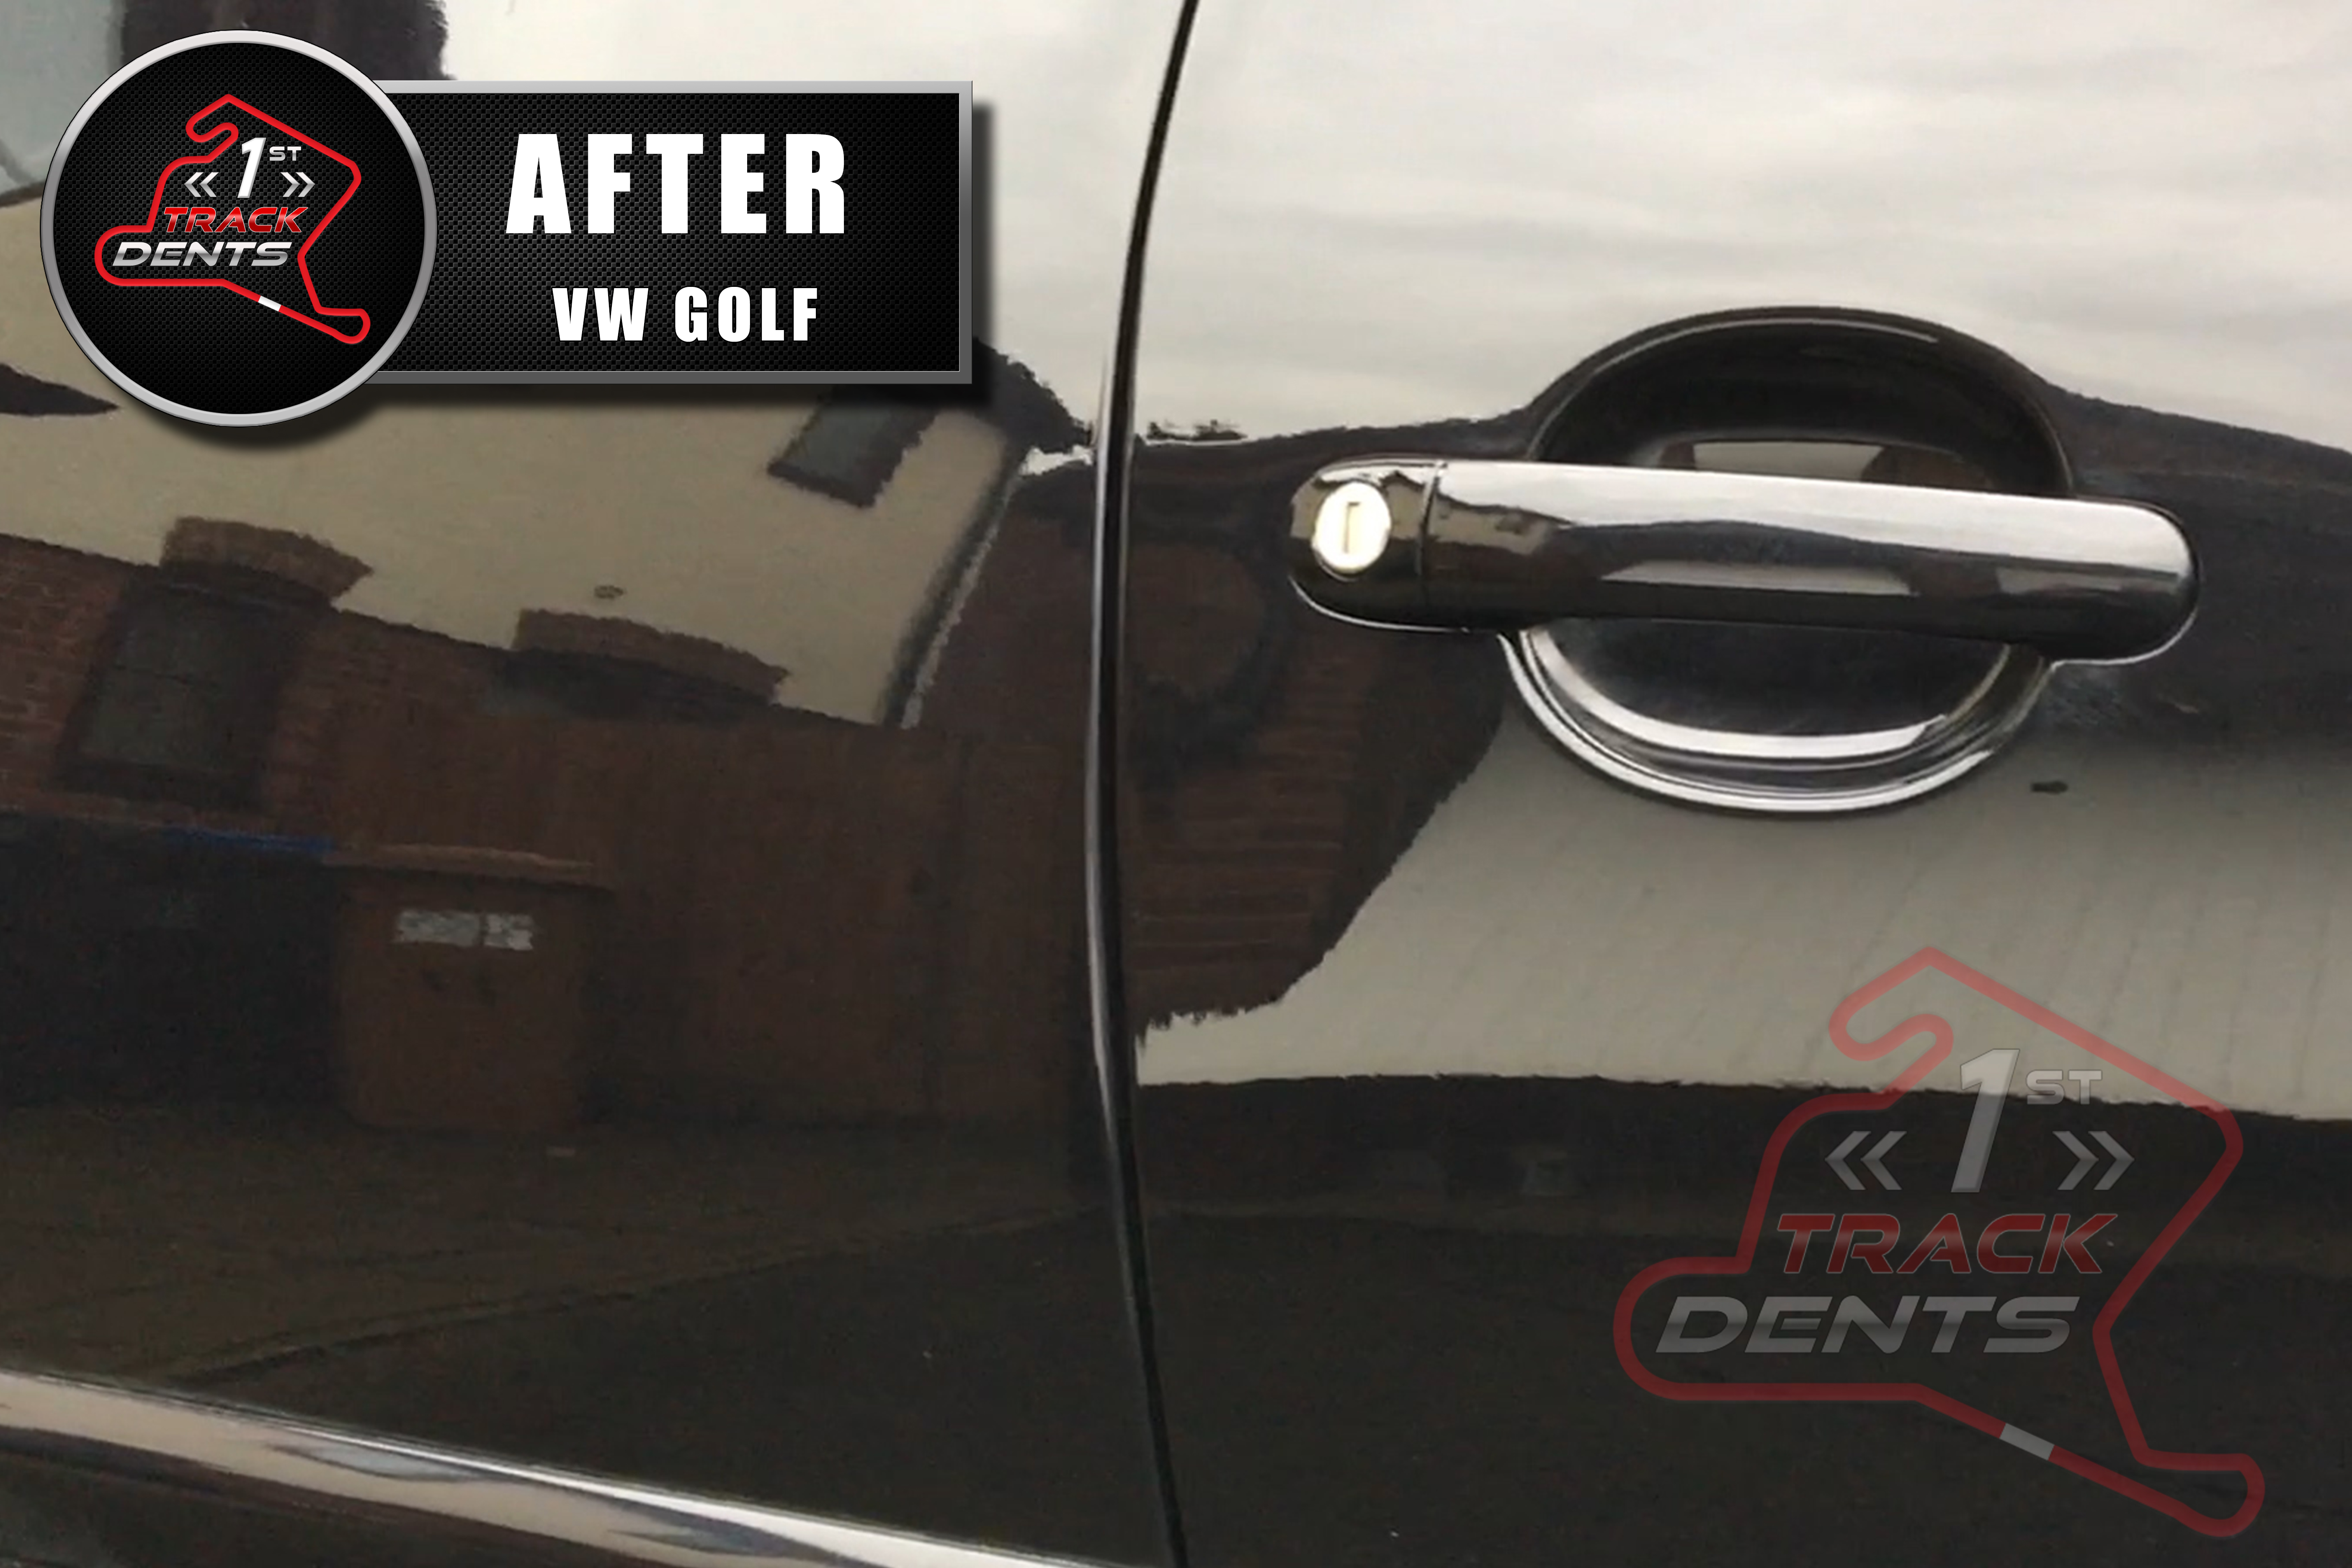 VW GOLF DOOR EDGE AFTER